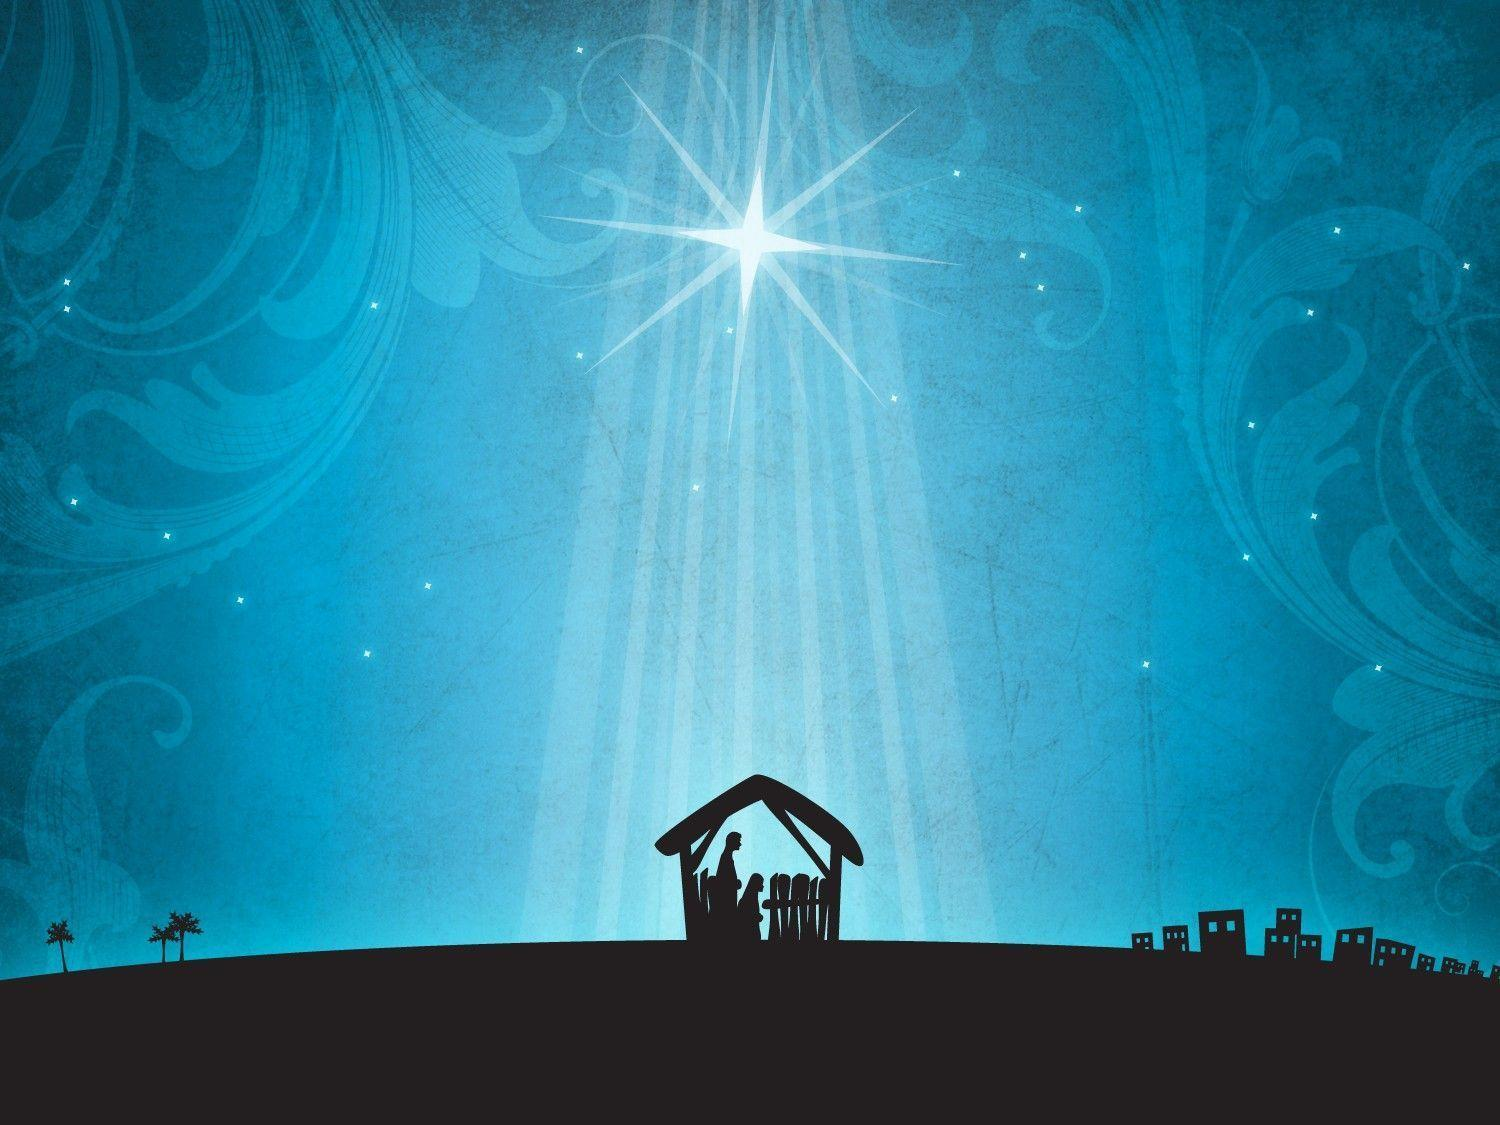 Xmas Stuff For > Christmas Nativity Scene Wallpapers